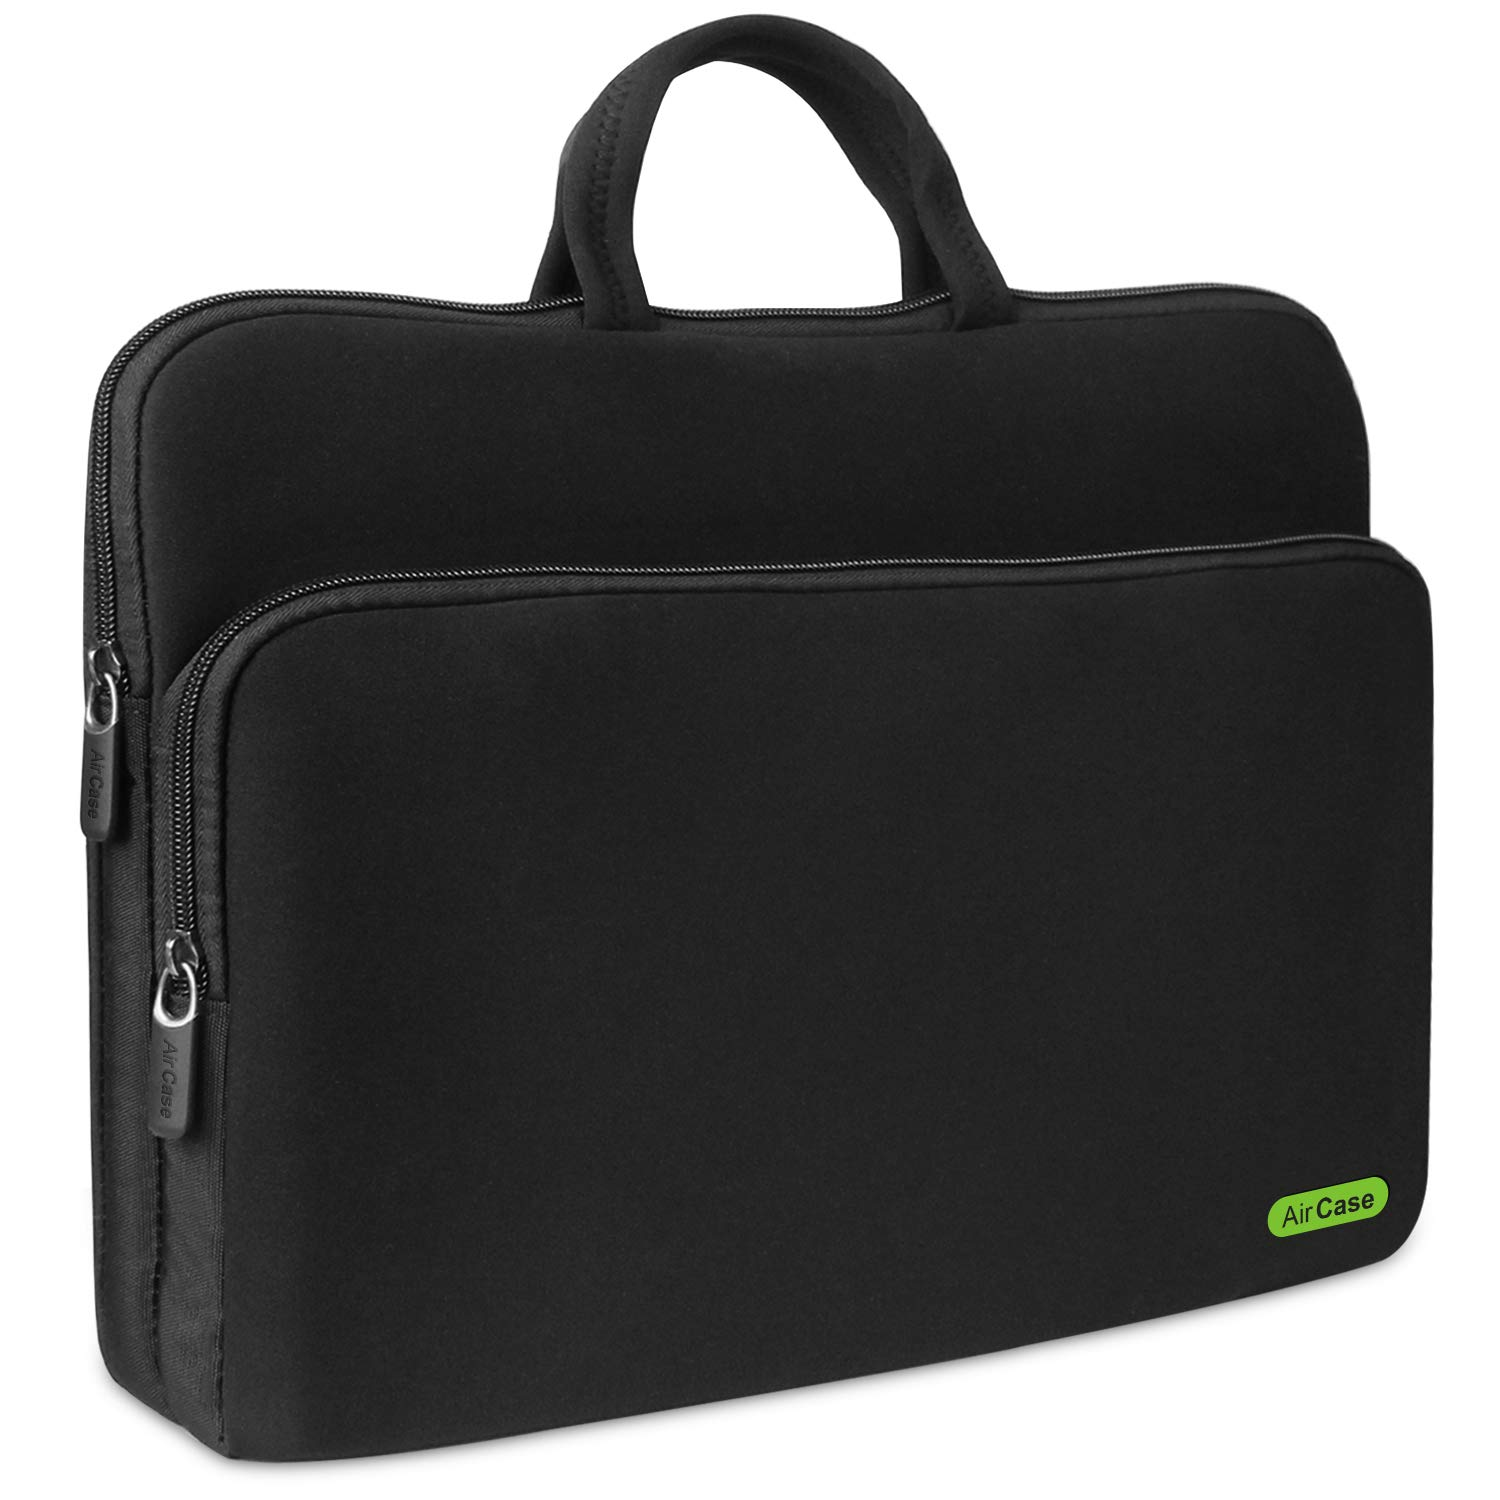 AirCase C50 Laptop Bag Sleeve Case Cover for 15.6 Inch Laptop MacBook, Protective, Neoprene (Black) product image